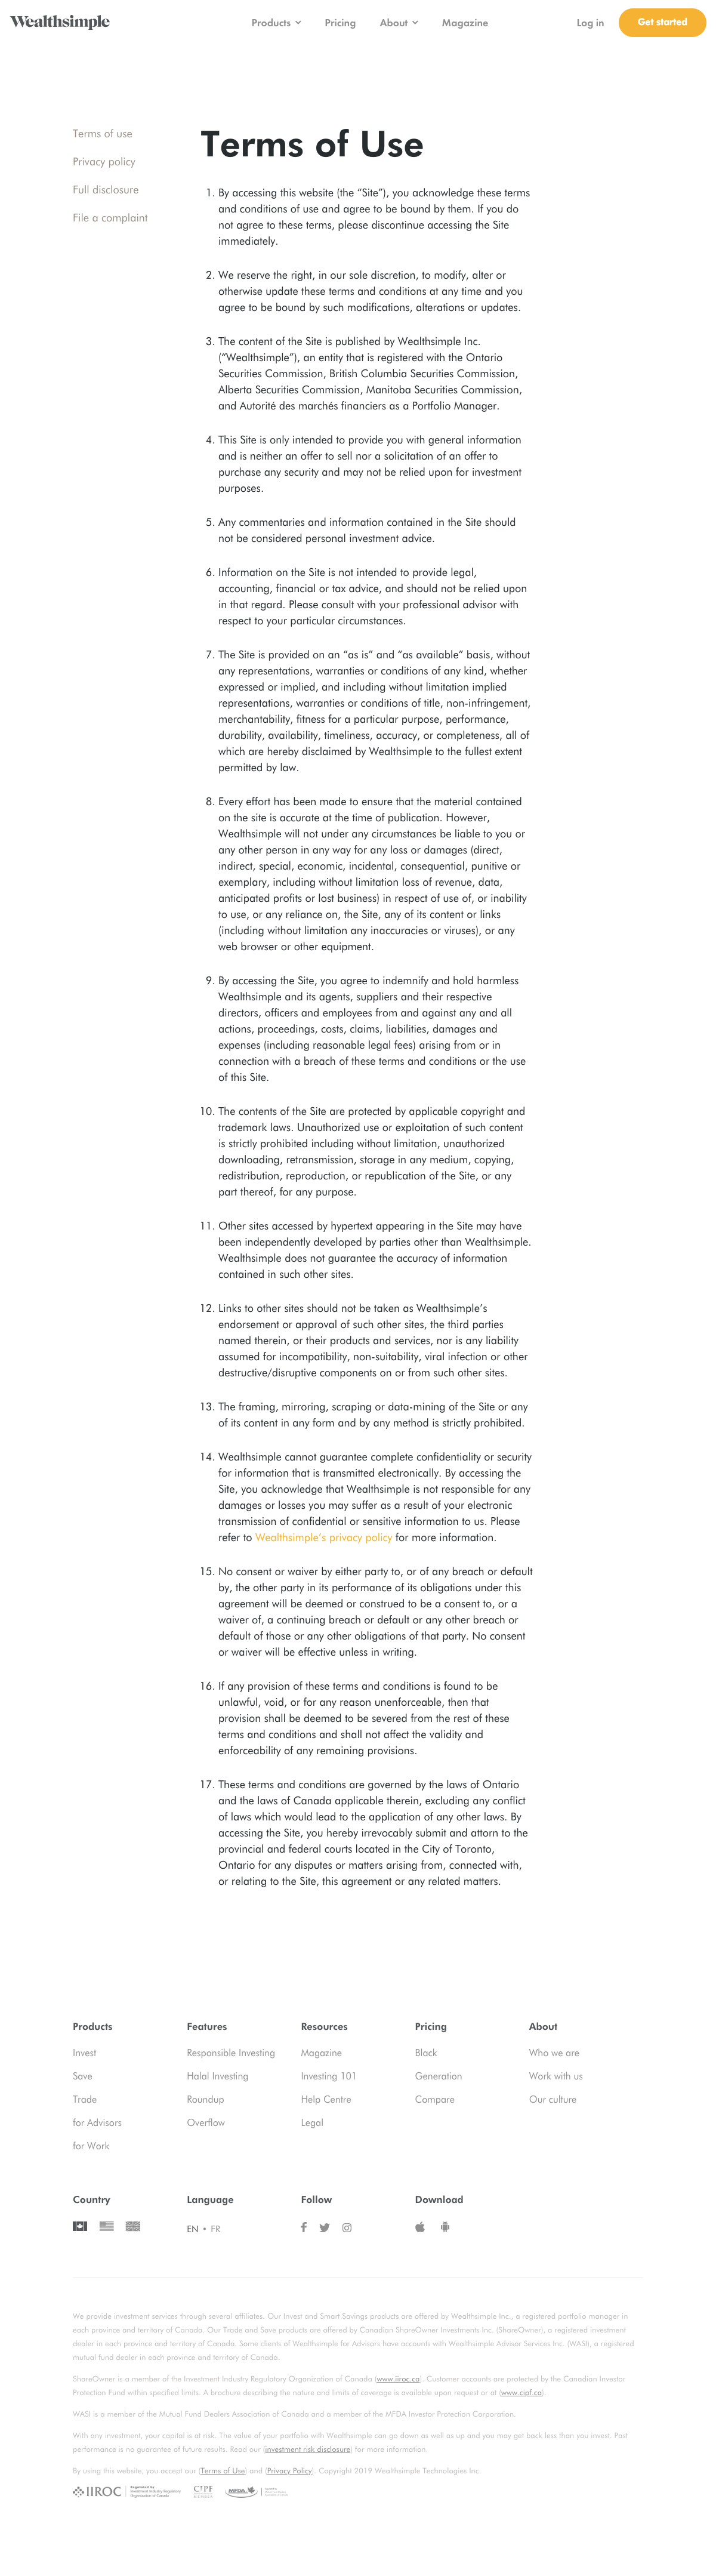 Wealthsimple - Legal page